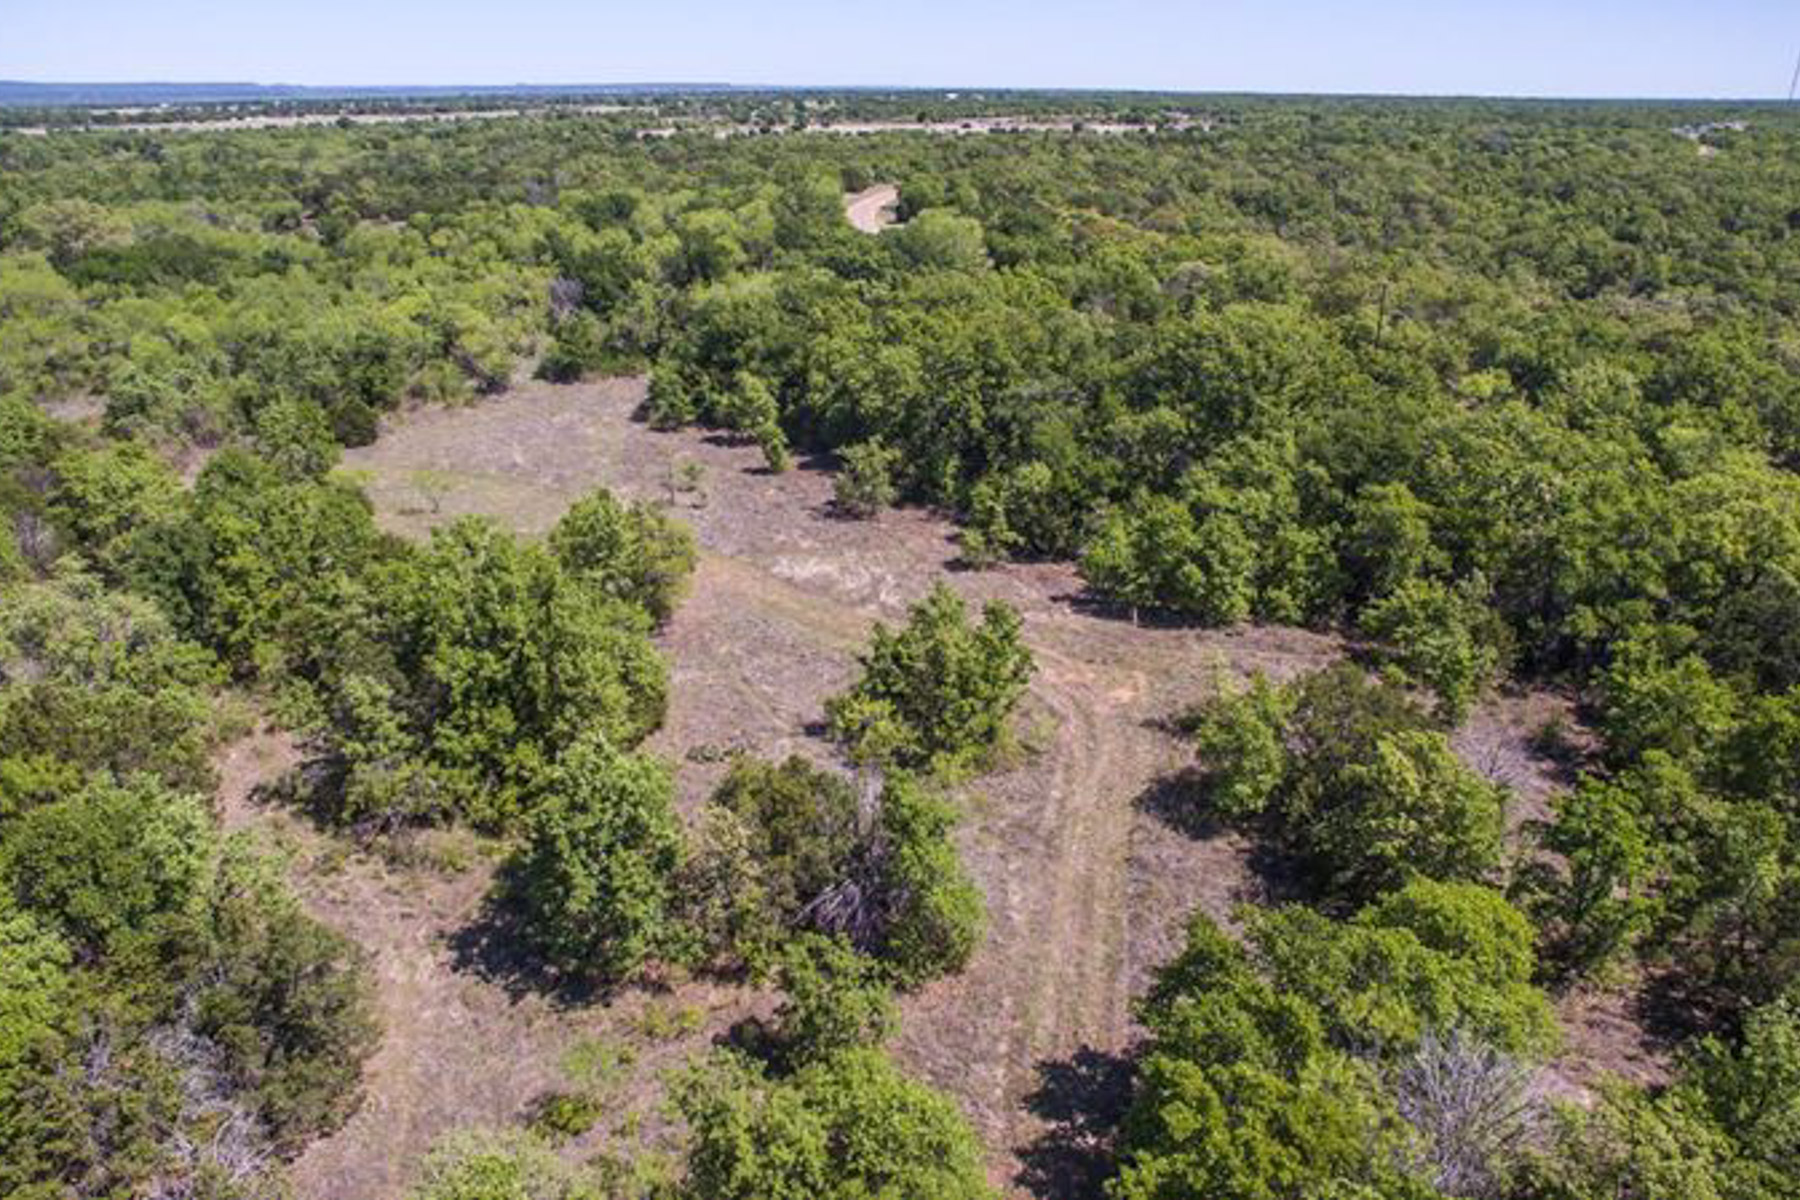 Land for Sale at 0005 N Lakeview Drive, Palo Pinto 0005 N Lakeview Dr Palo Pinto, Texas 76484 United States